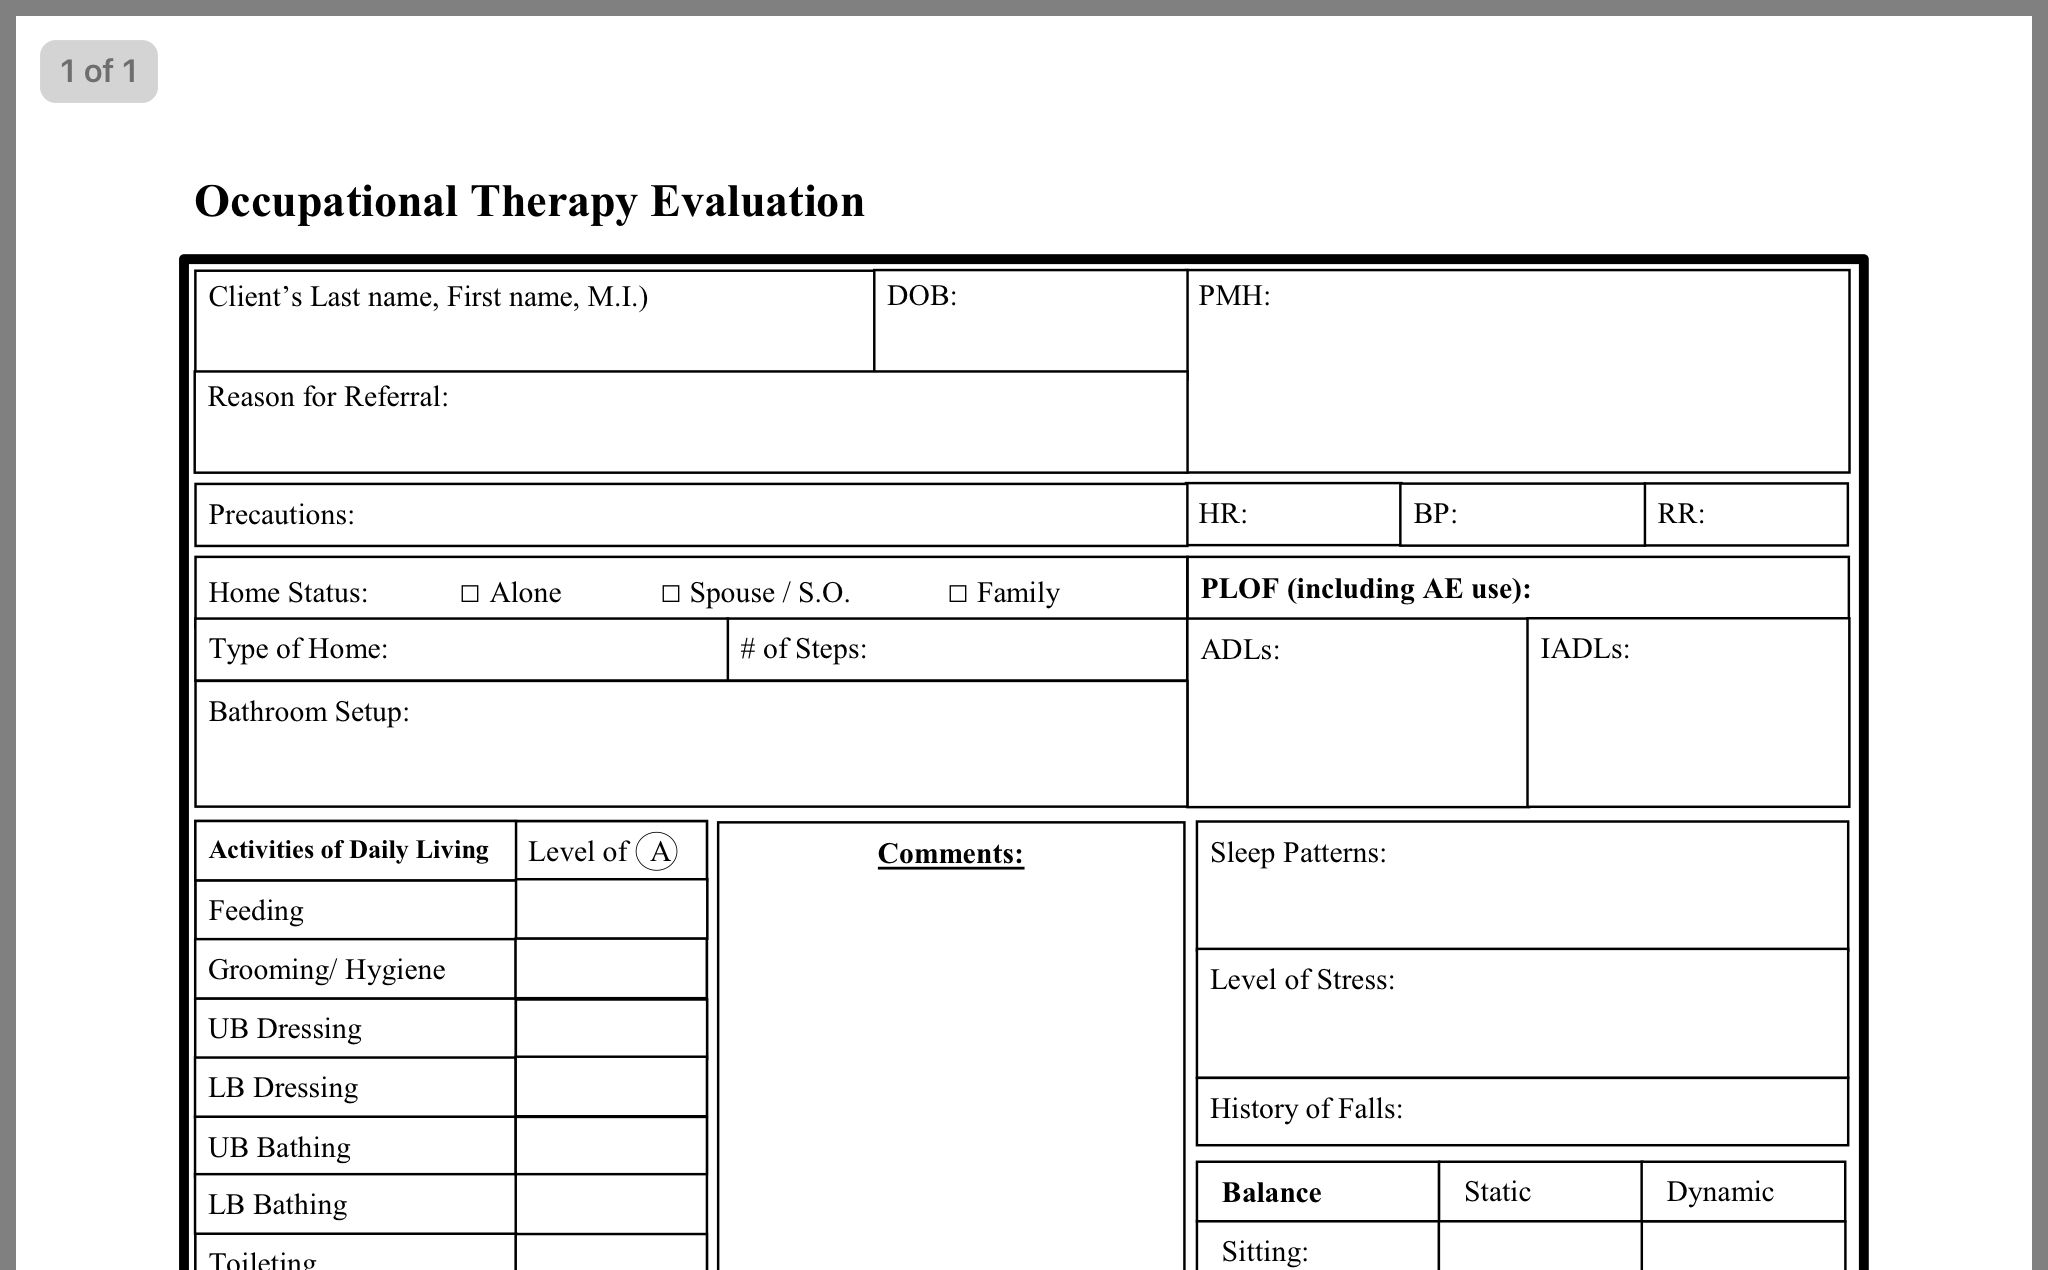 Pin By Erin Kamada On Evaluation Form Evaluation Form Sleep Pattern Evaluation Pediatric occupational therapy evaluation template